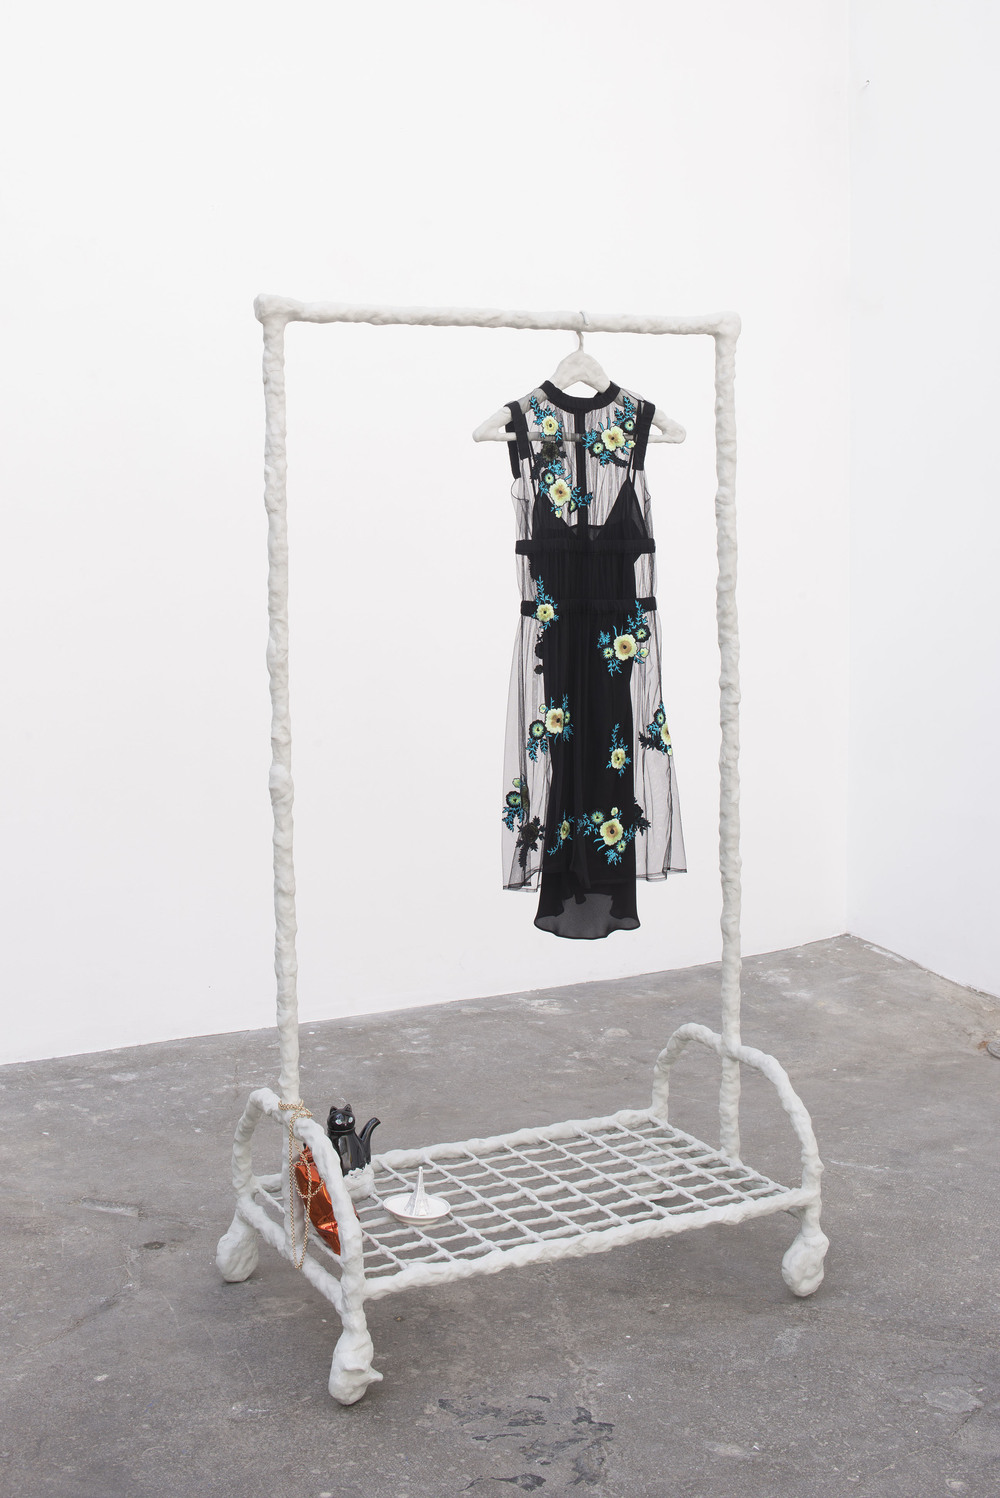 Website Three 2014 Christopher Kane, Anya Hindmarch, Shinzi Katoh, Anthropologie and Magic Sculp 69.68 x 50 x 24.8 inches